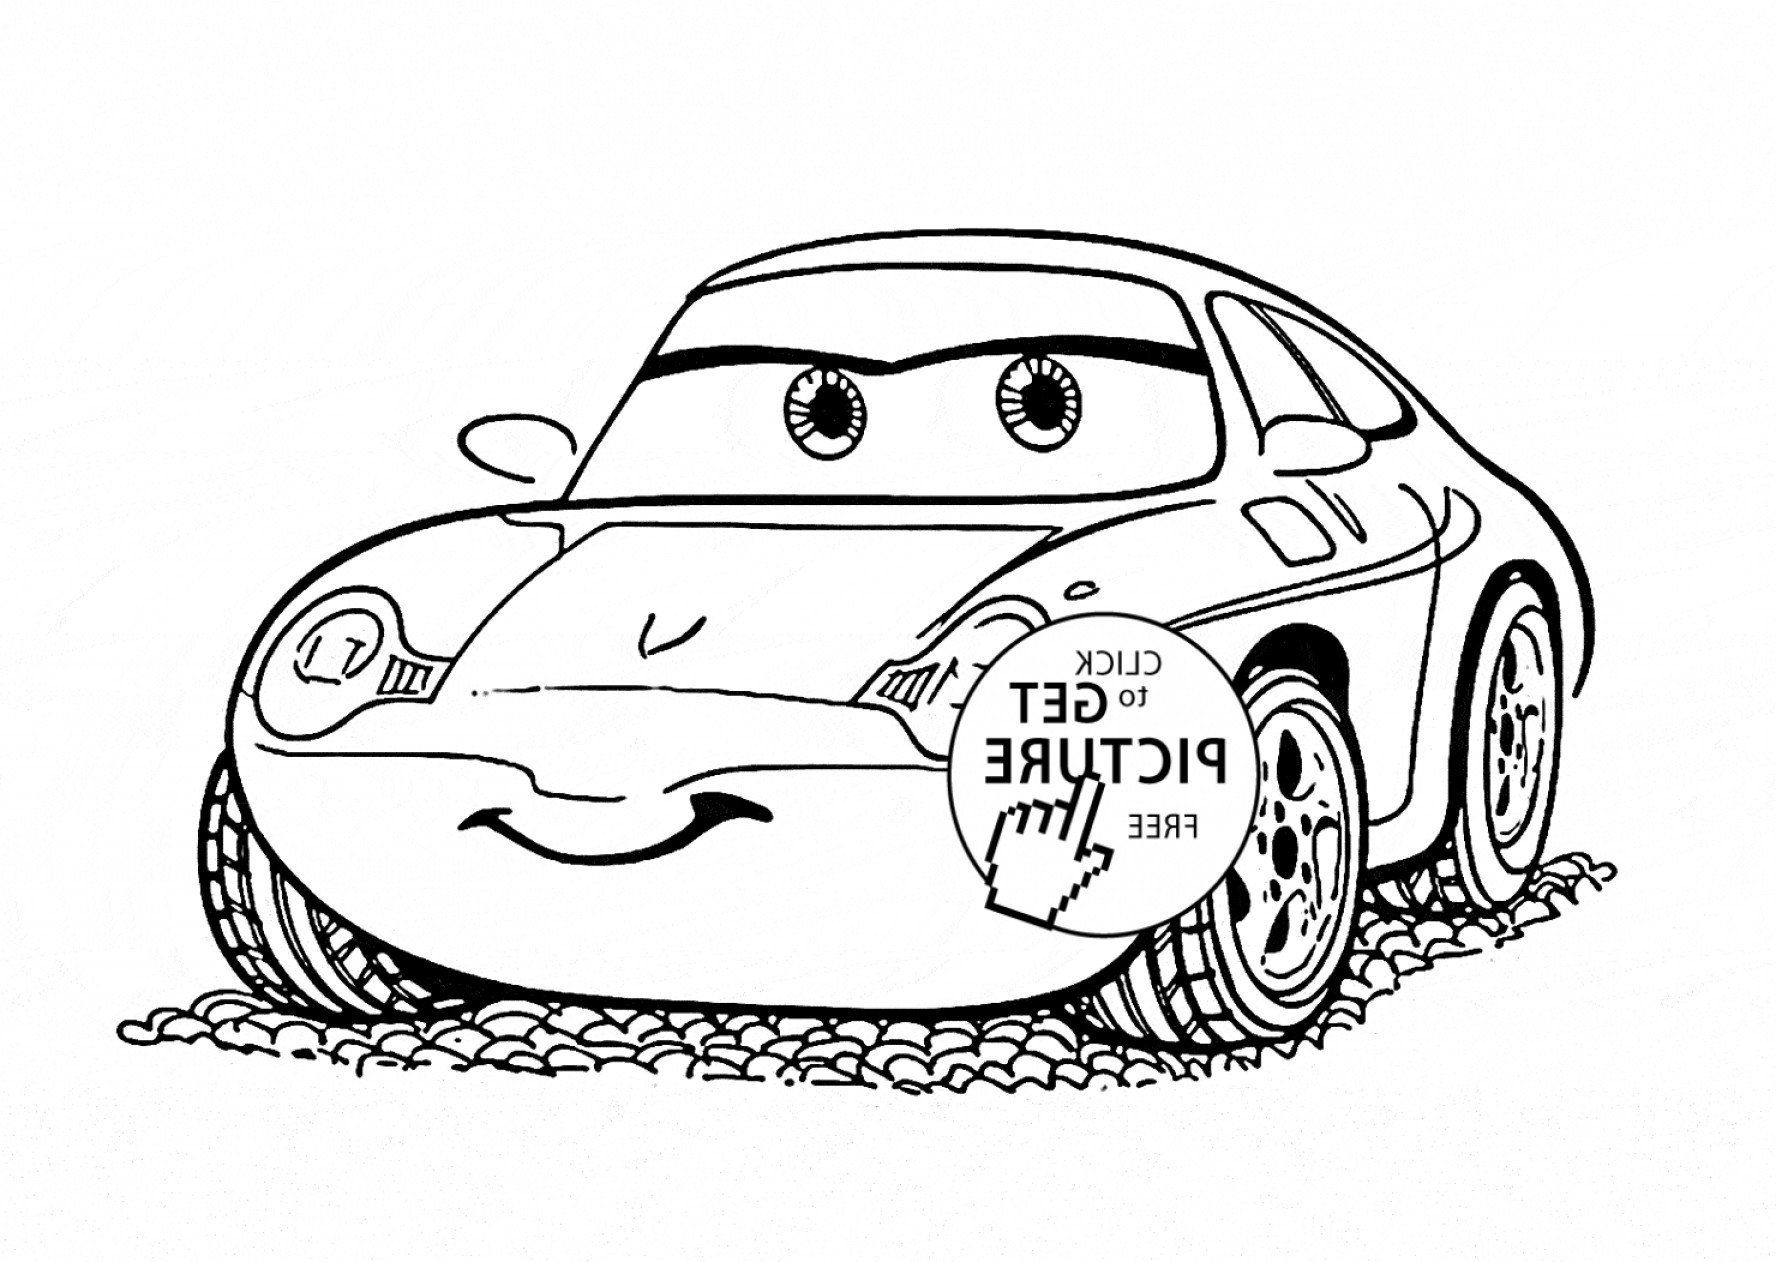 Disney Cars Coloring Pages Awesome Cars Lightning Mcqueen Zum Ausmalen Cars Coloring Pages Coloring Pages Coloring Pages Inspirational